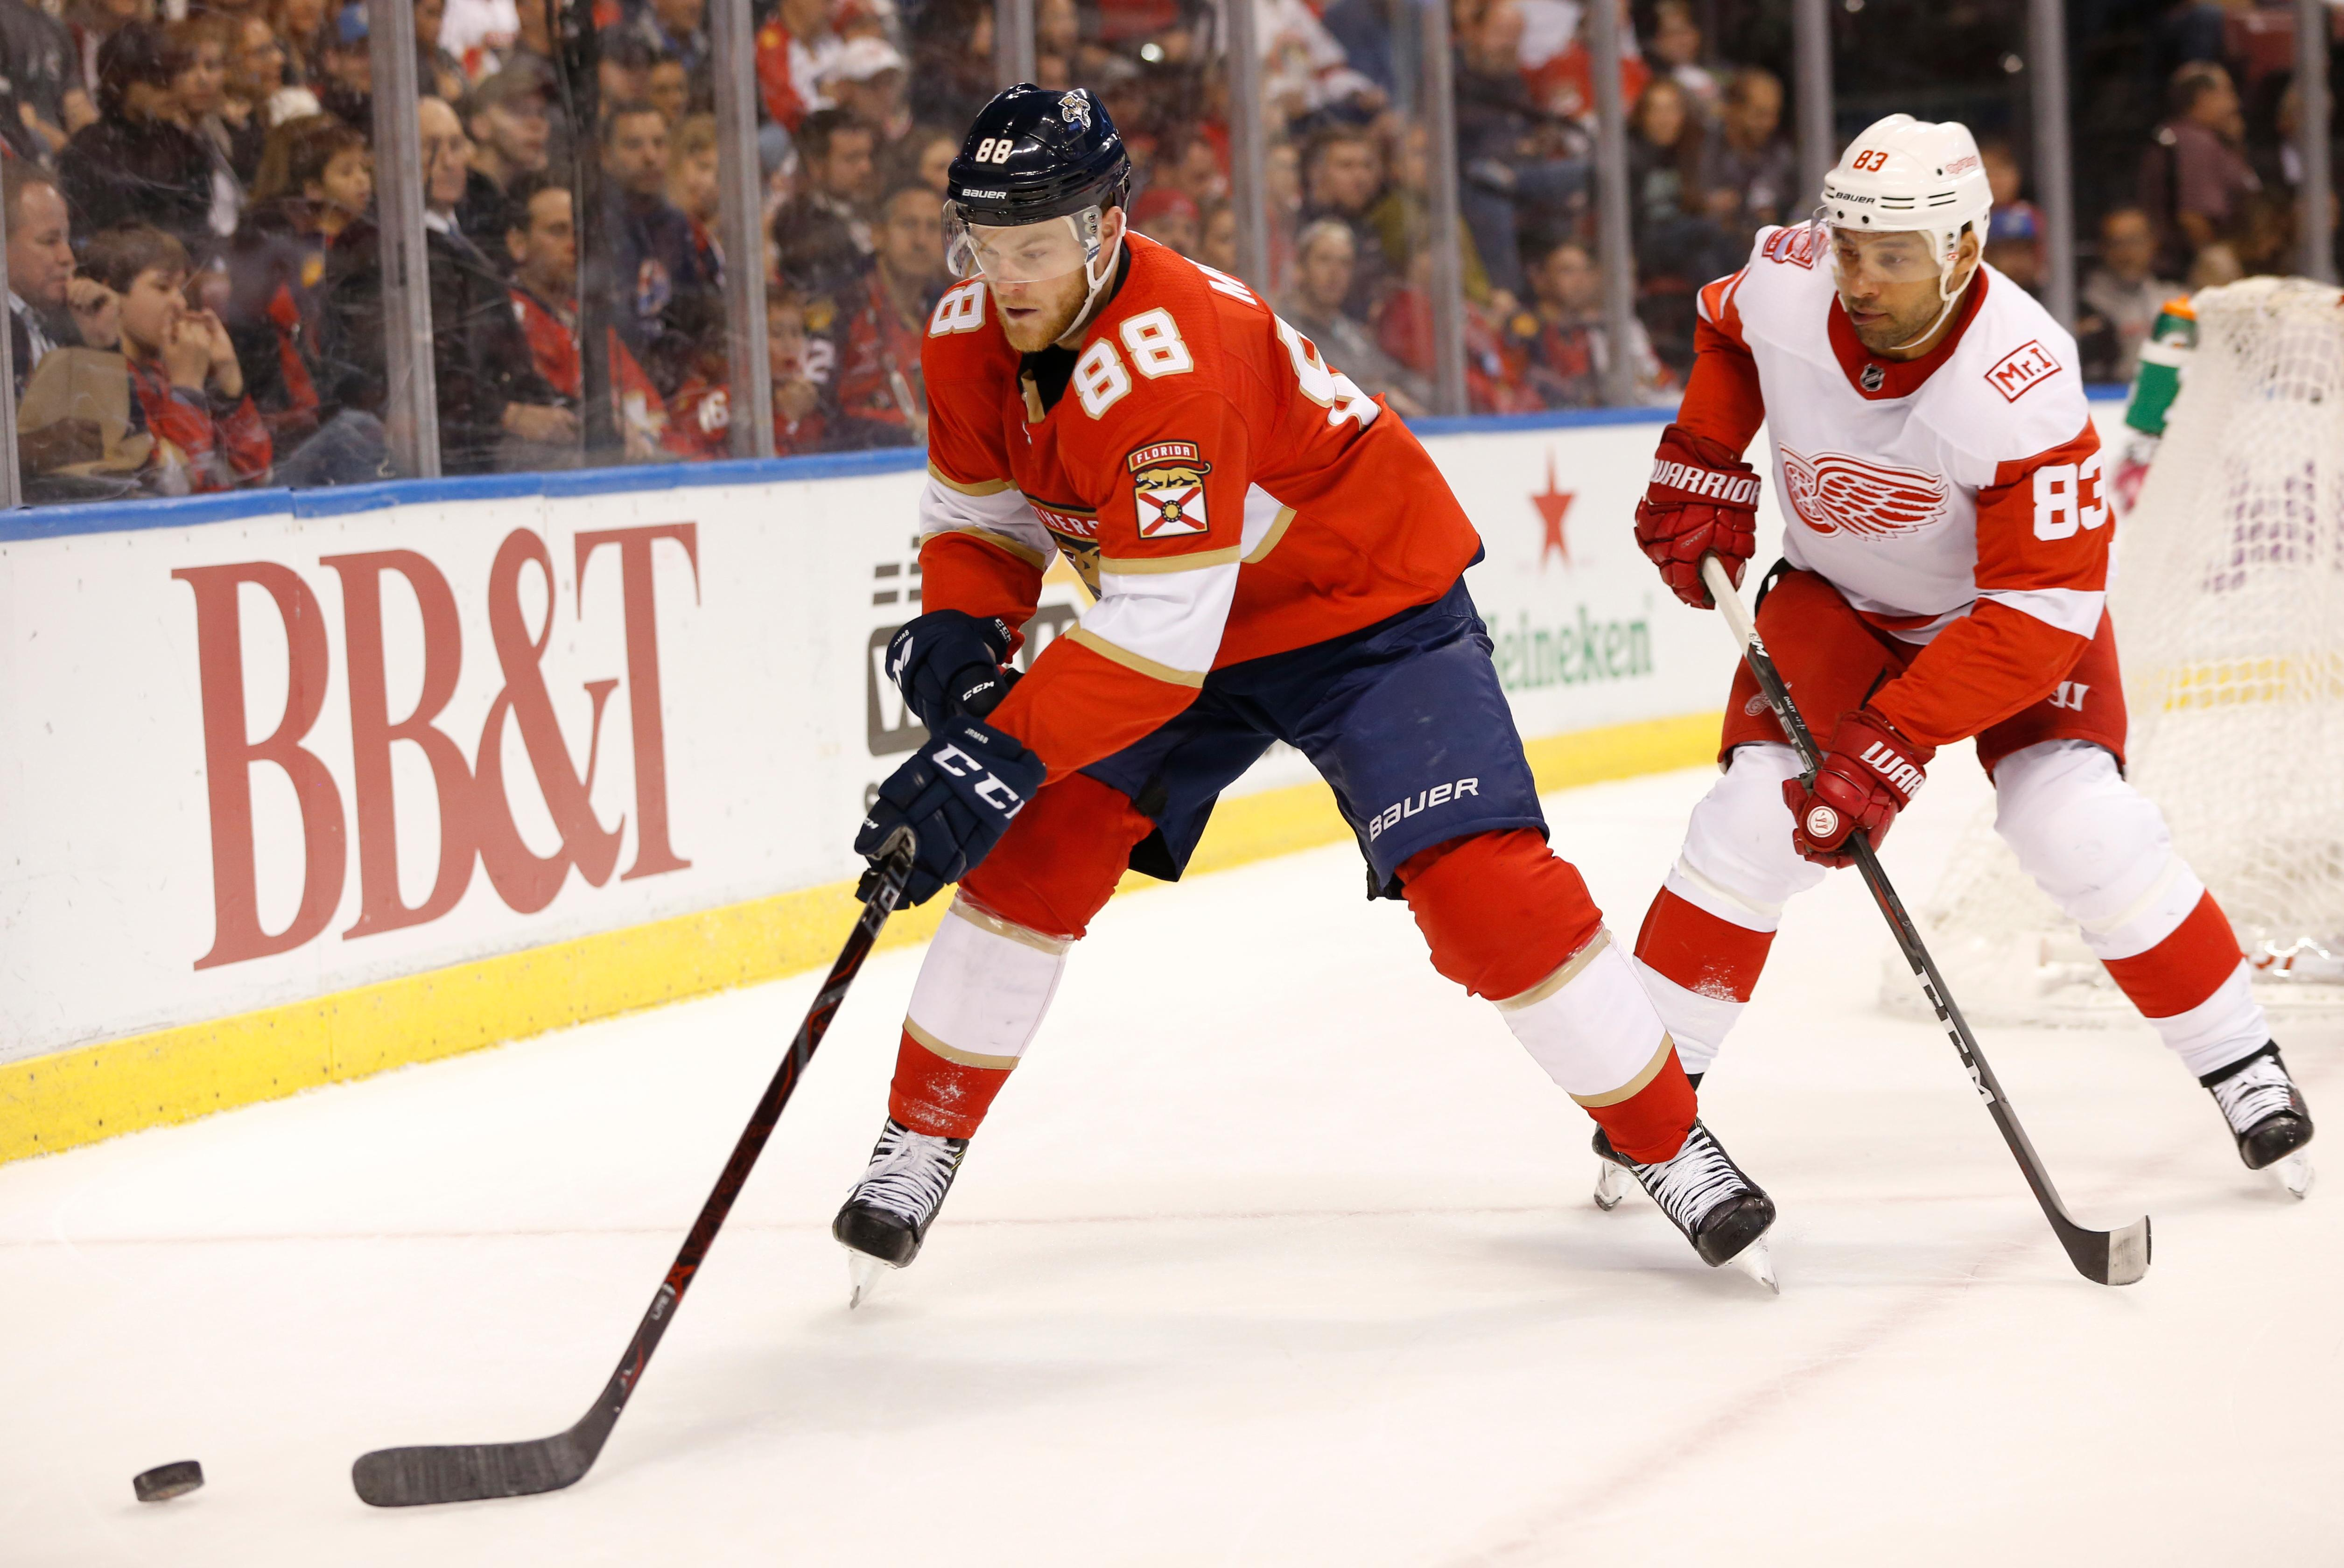 Florida Panthers left wing Jamie McGinn (88) and Detroit Red Wings defenseman Trevor Daley (83) battle for the puck during the first period of an NHL hockey game, Saturday, Feb. 3, 2018 in Sunrise, Fla. (AP Photo/Wilfredo Lee)